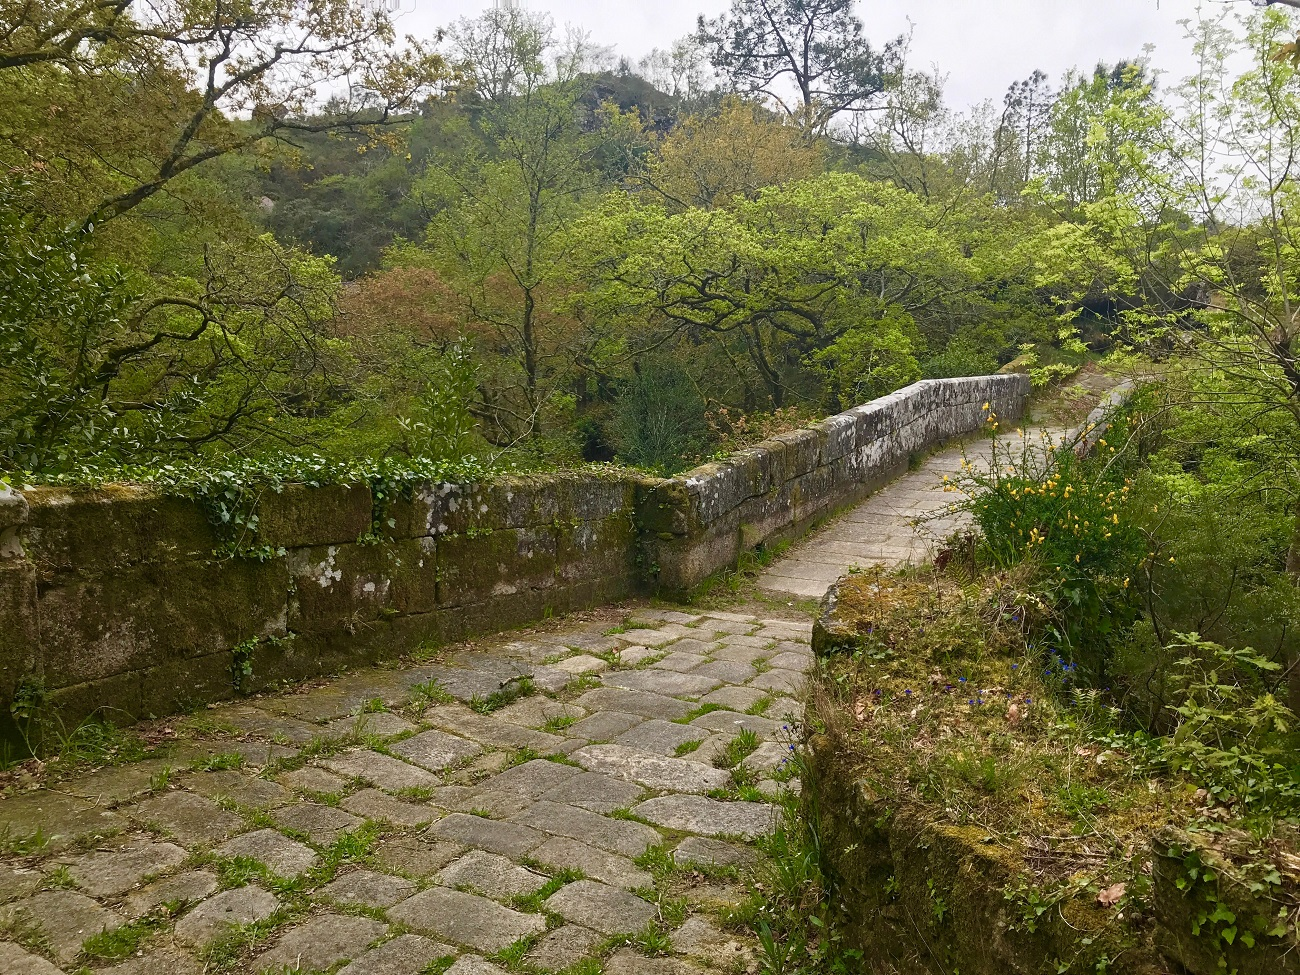 Roman road near Cambados galicia spain walks photo art travel